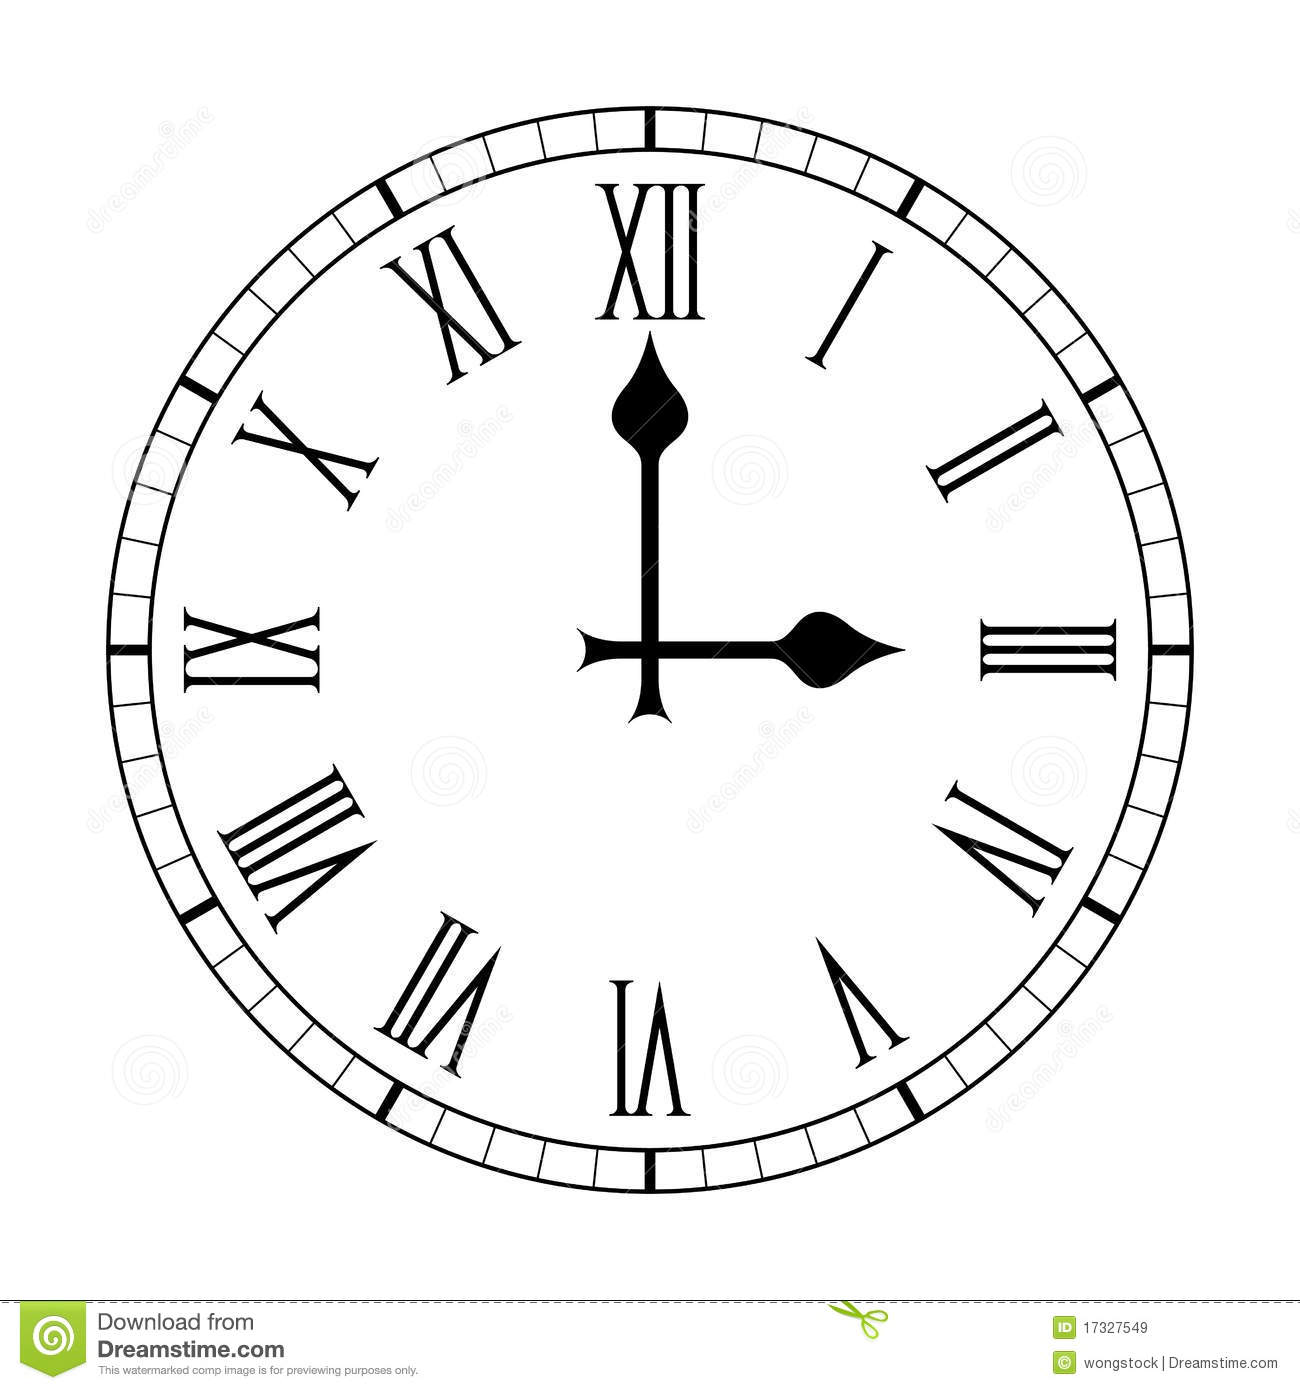 Elegant clock face with roman numerals on a white background.